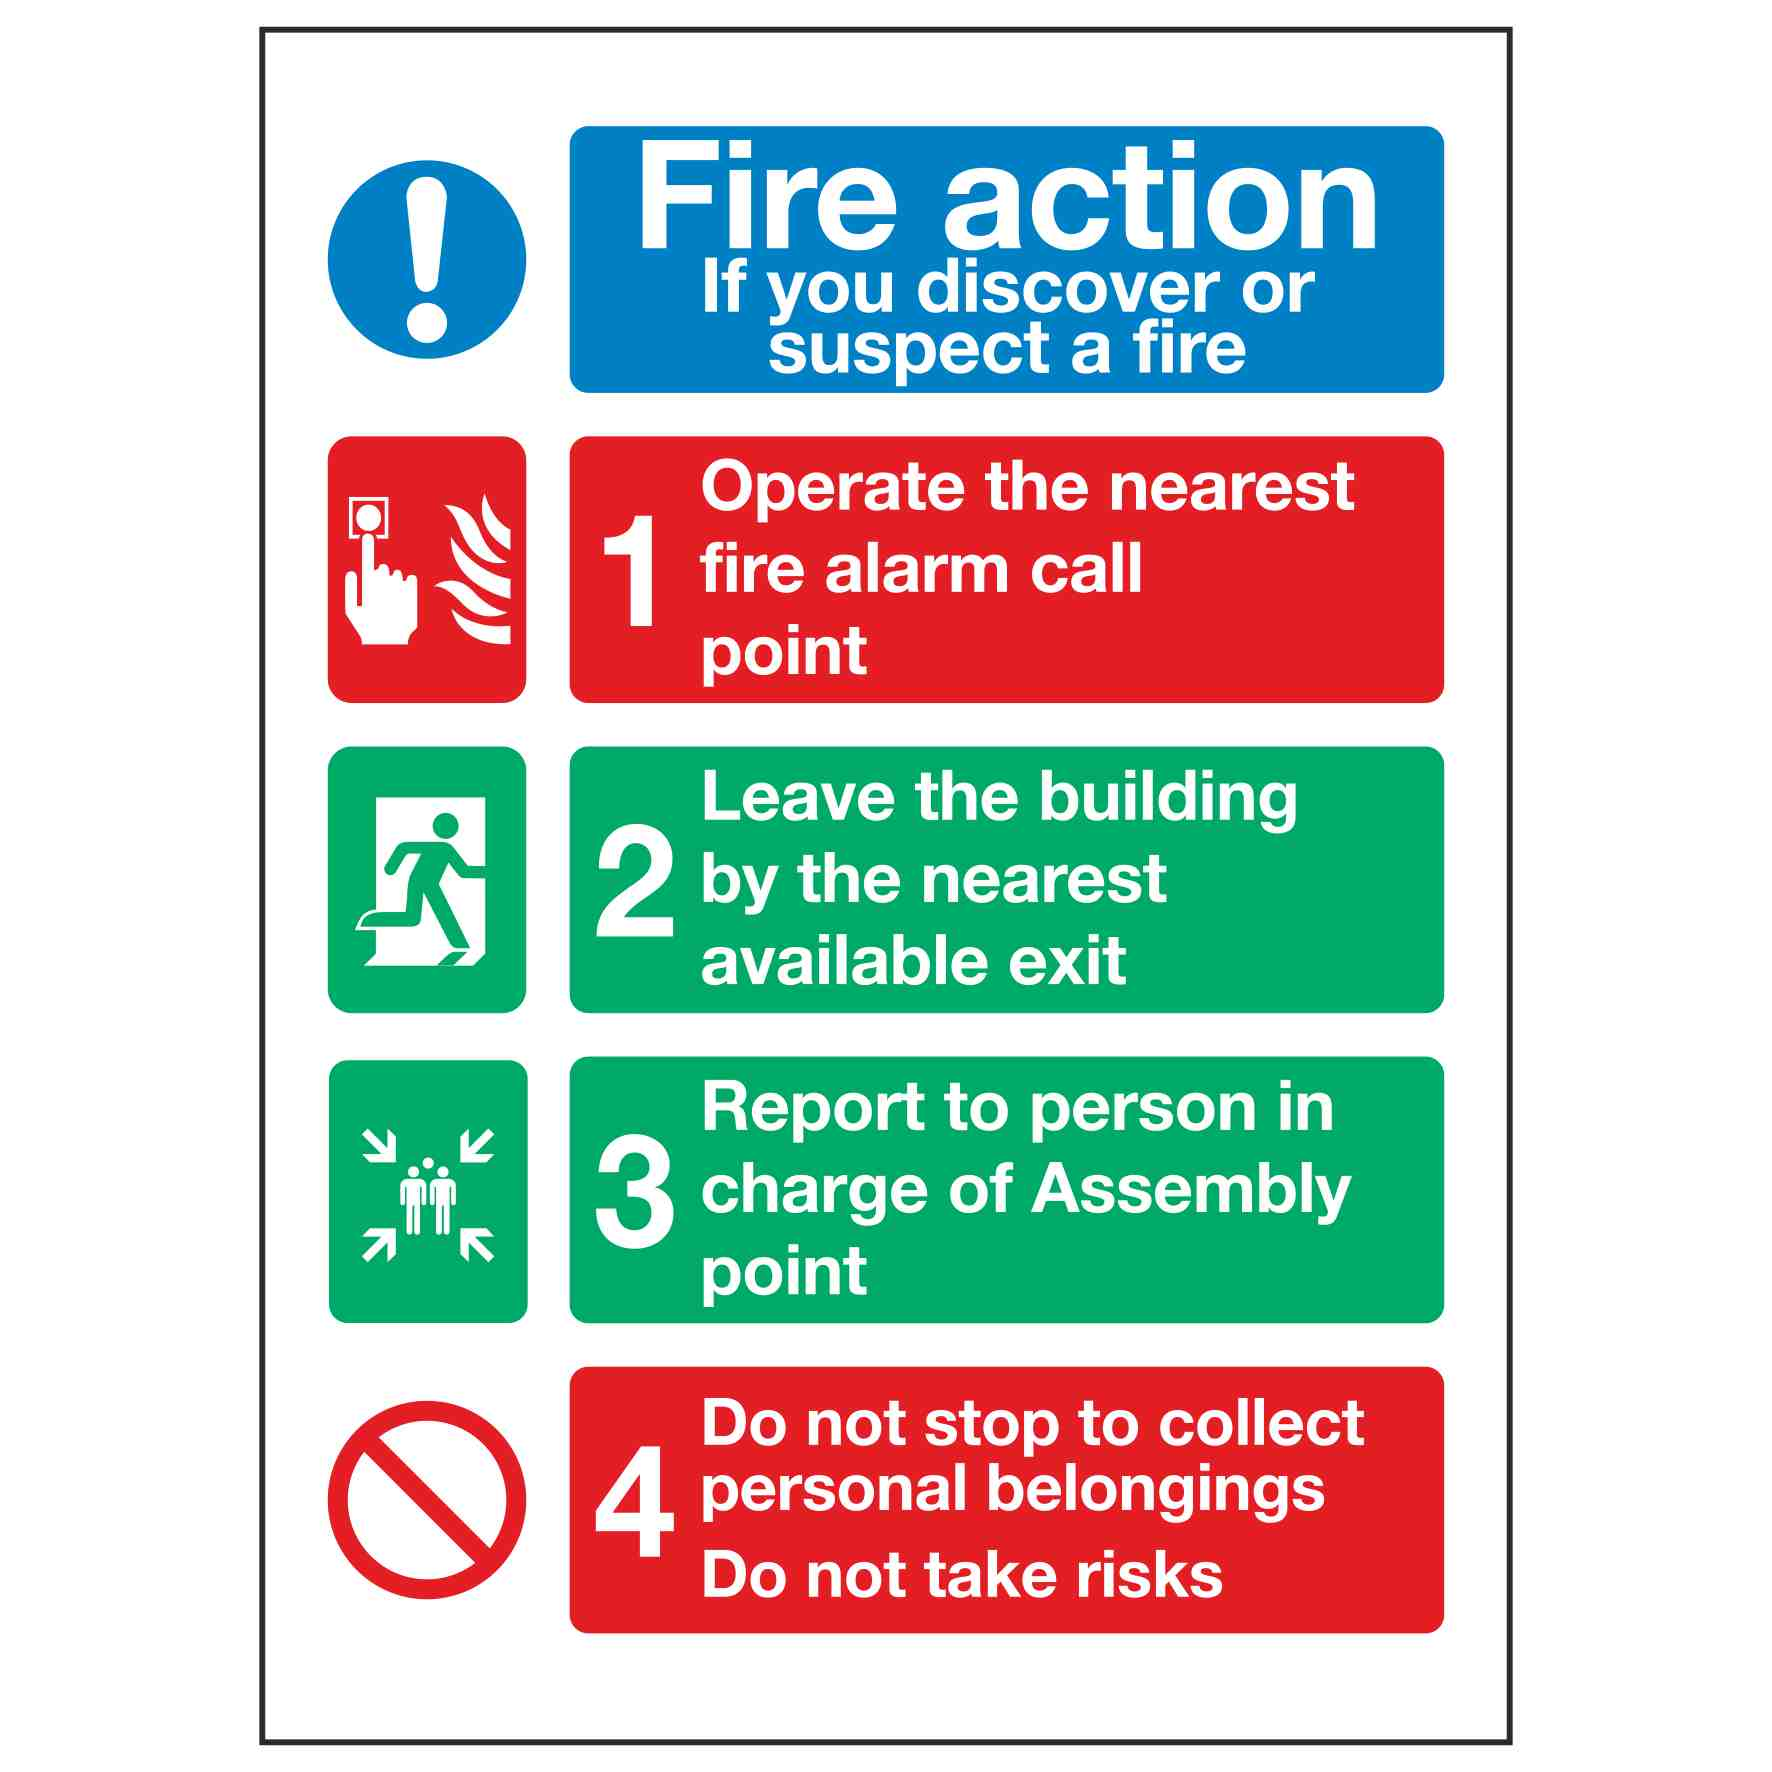 Fire Action If You Discover Or Suspect A Fire / Operate